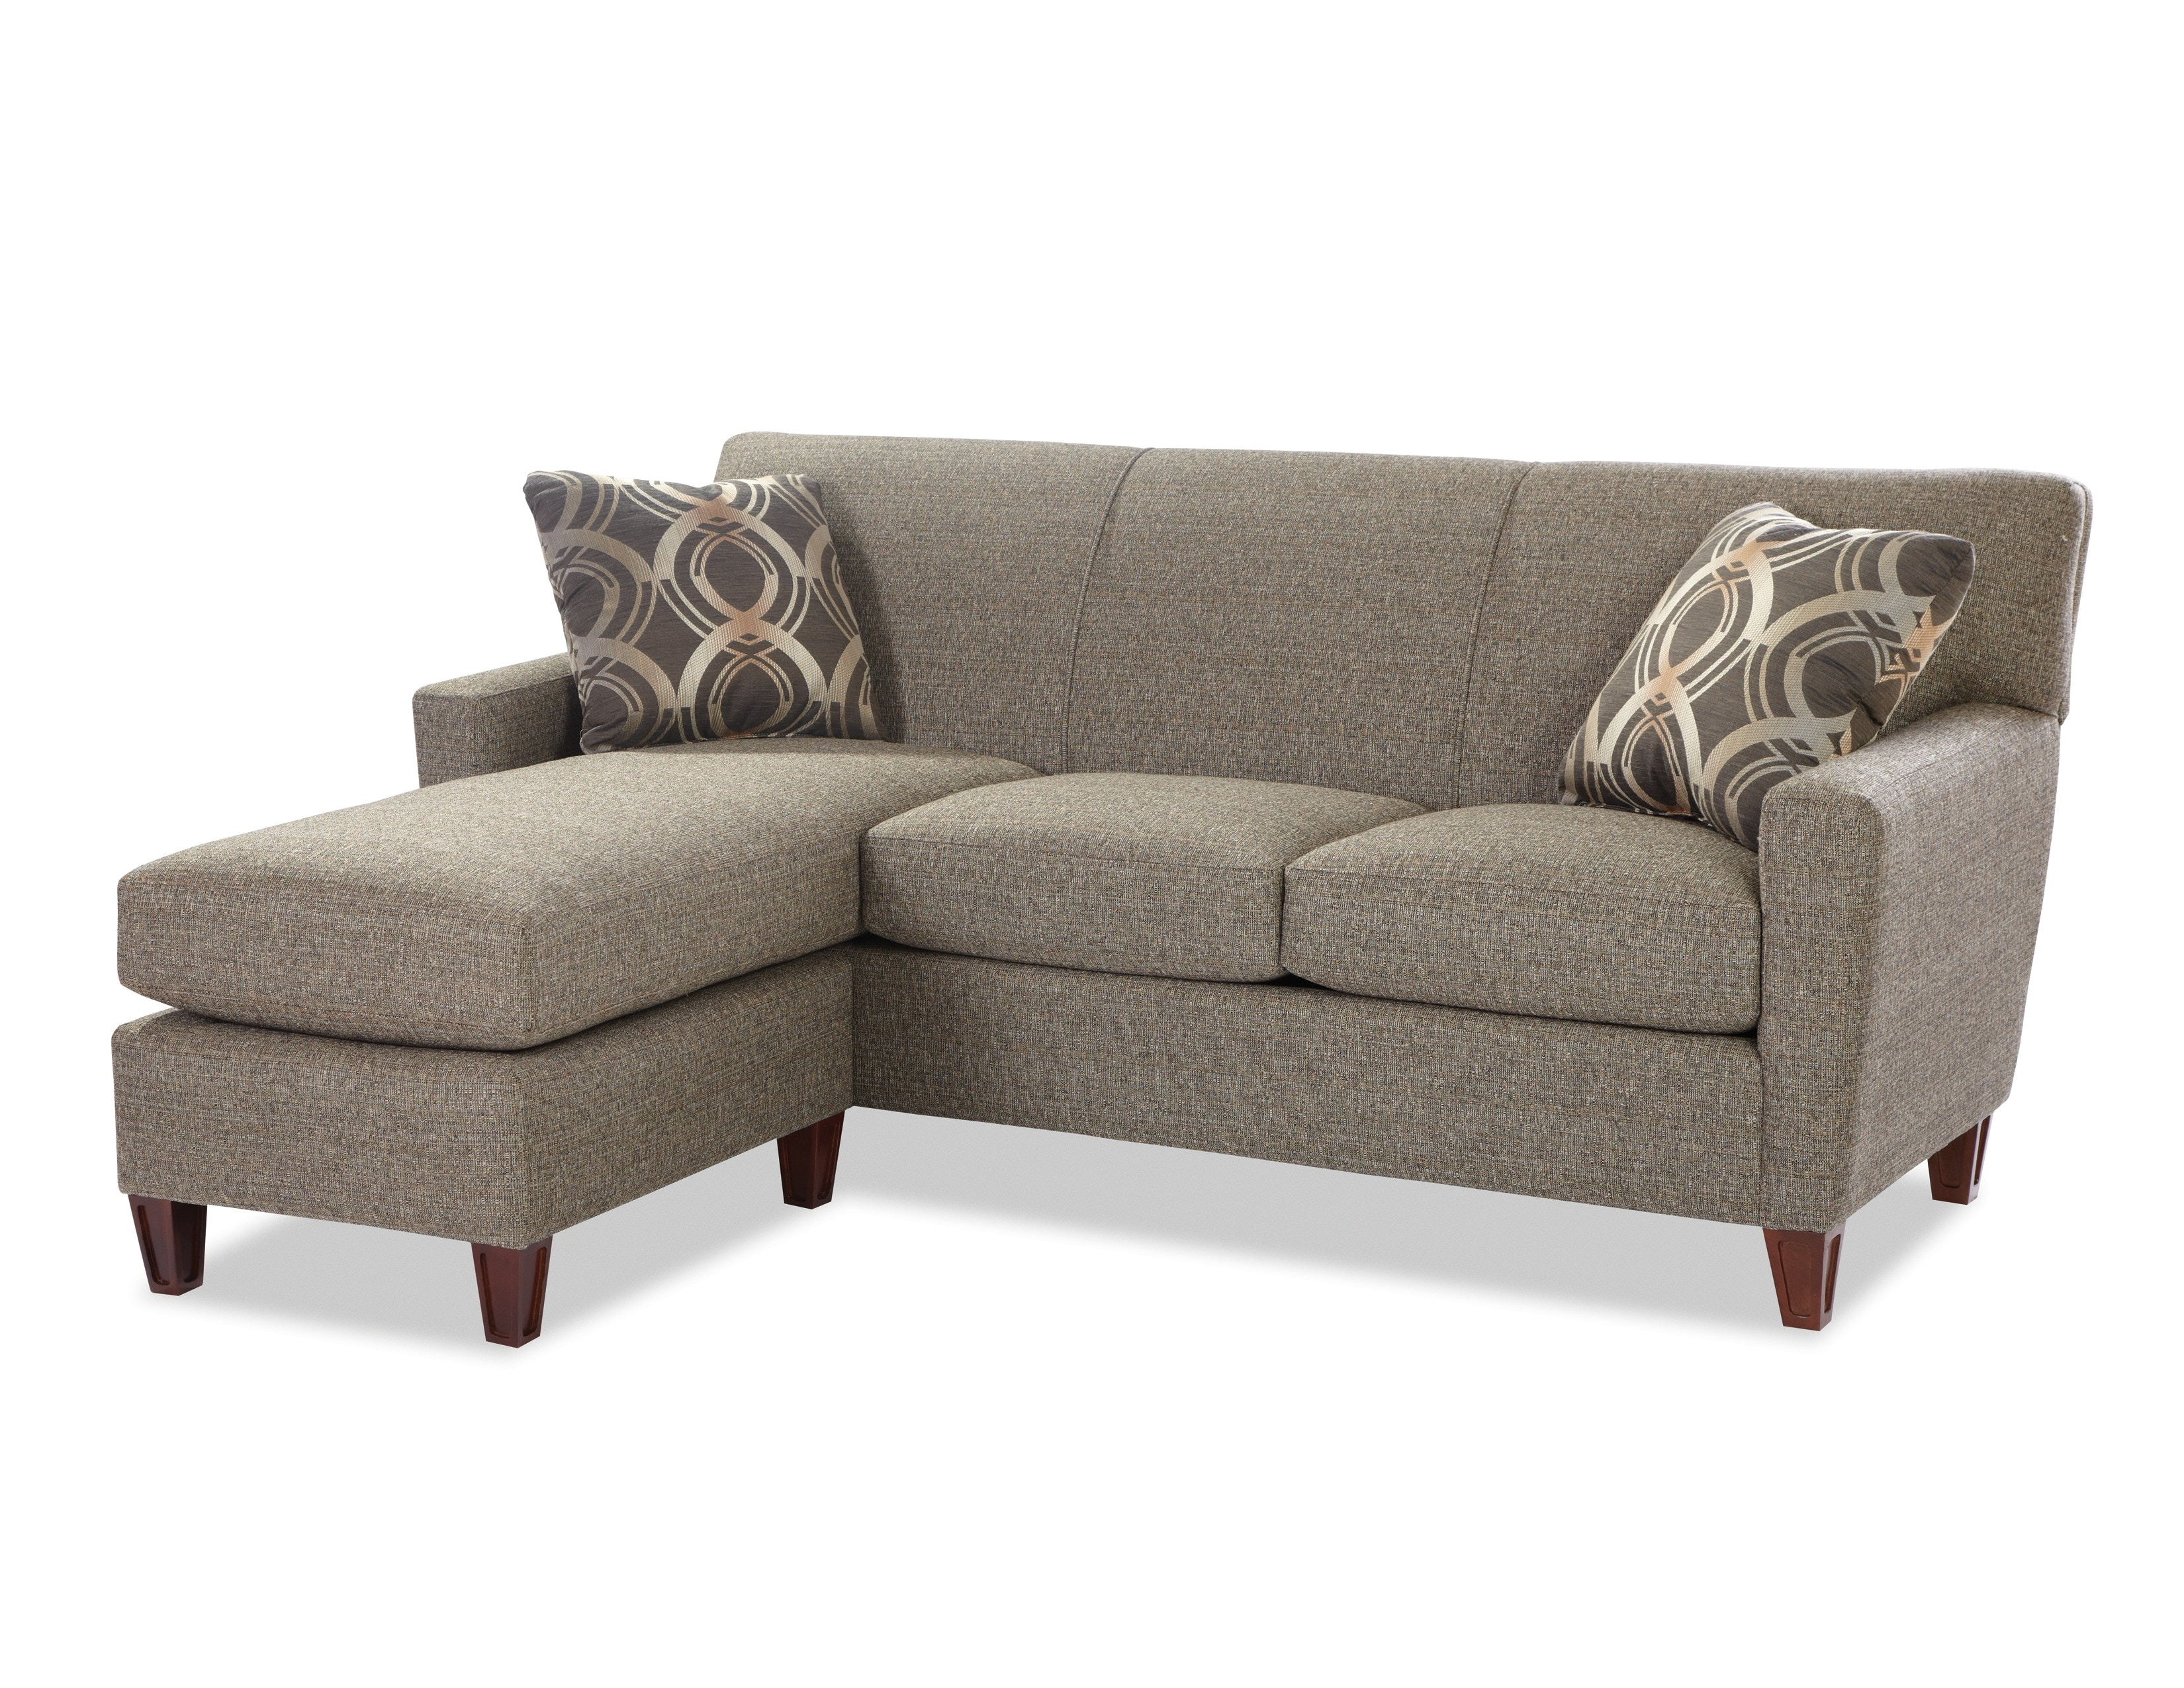 Cozy Life Chaise Sofa With Pillows 443086